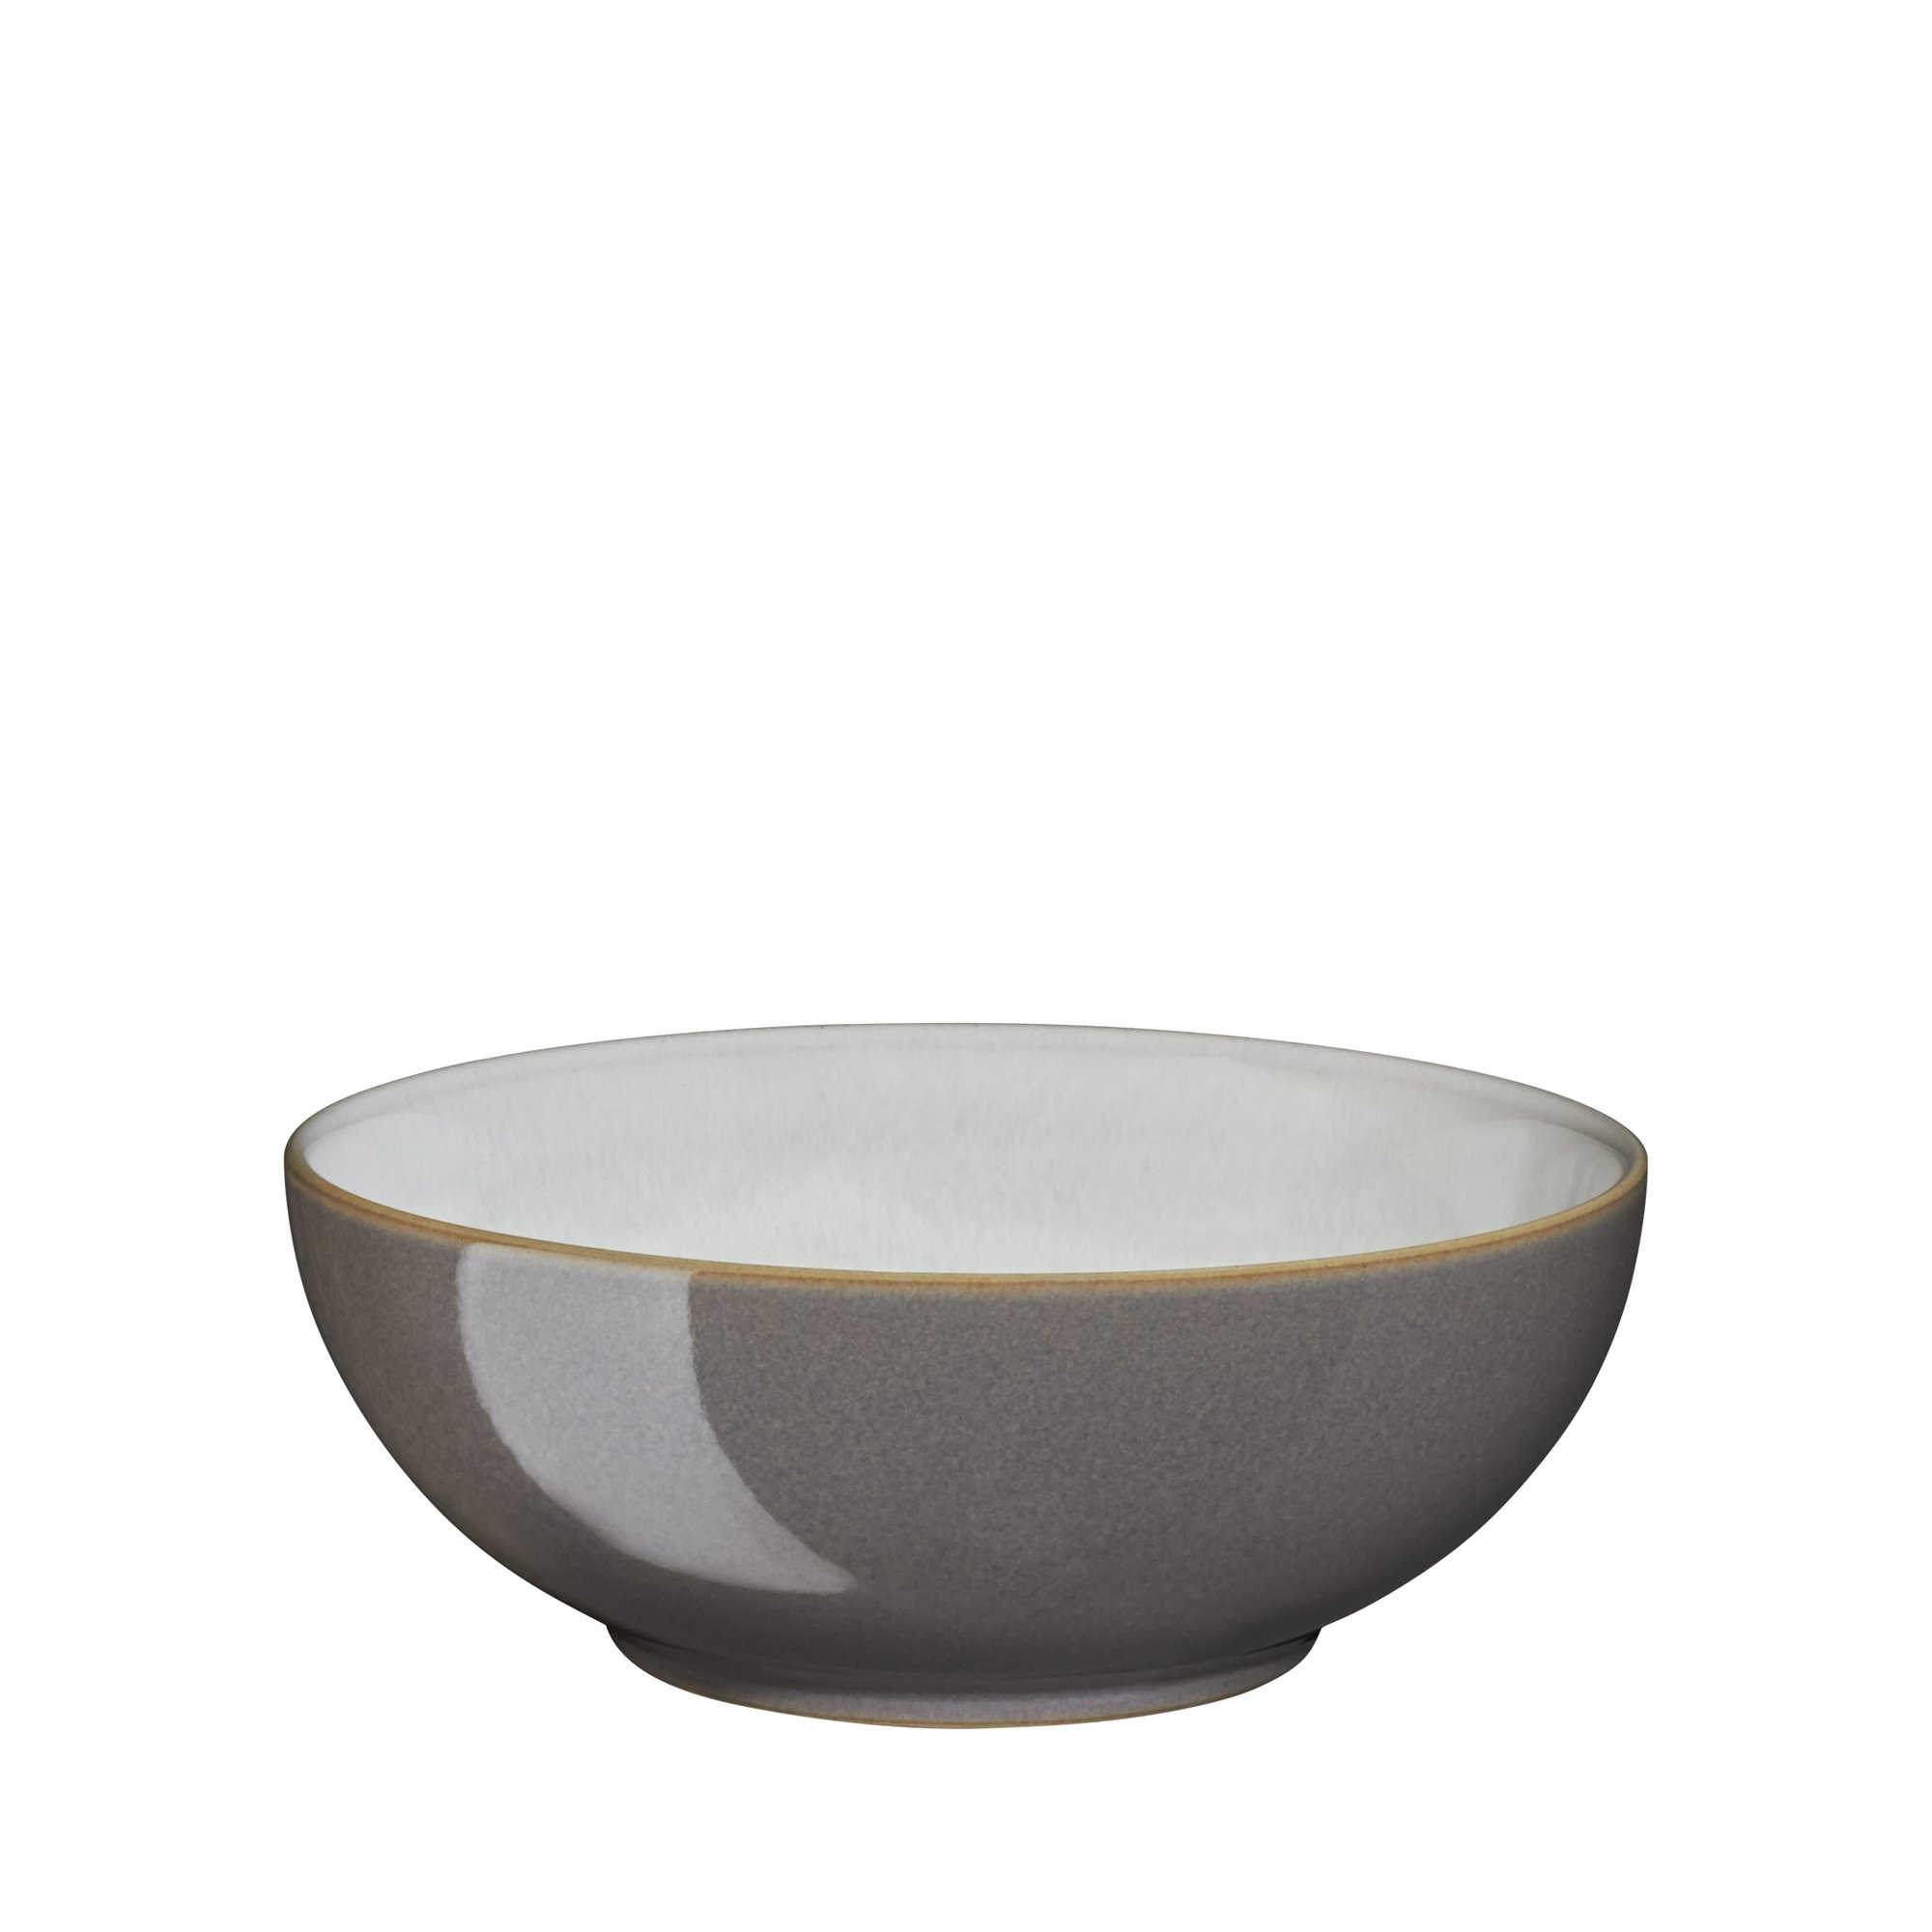 Denby USA Blends Truffle/Canvas Cereal Bowl, Brown/Cream